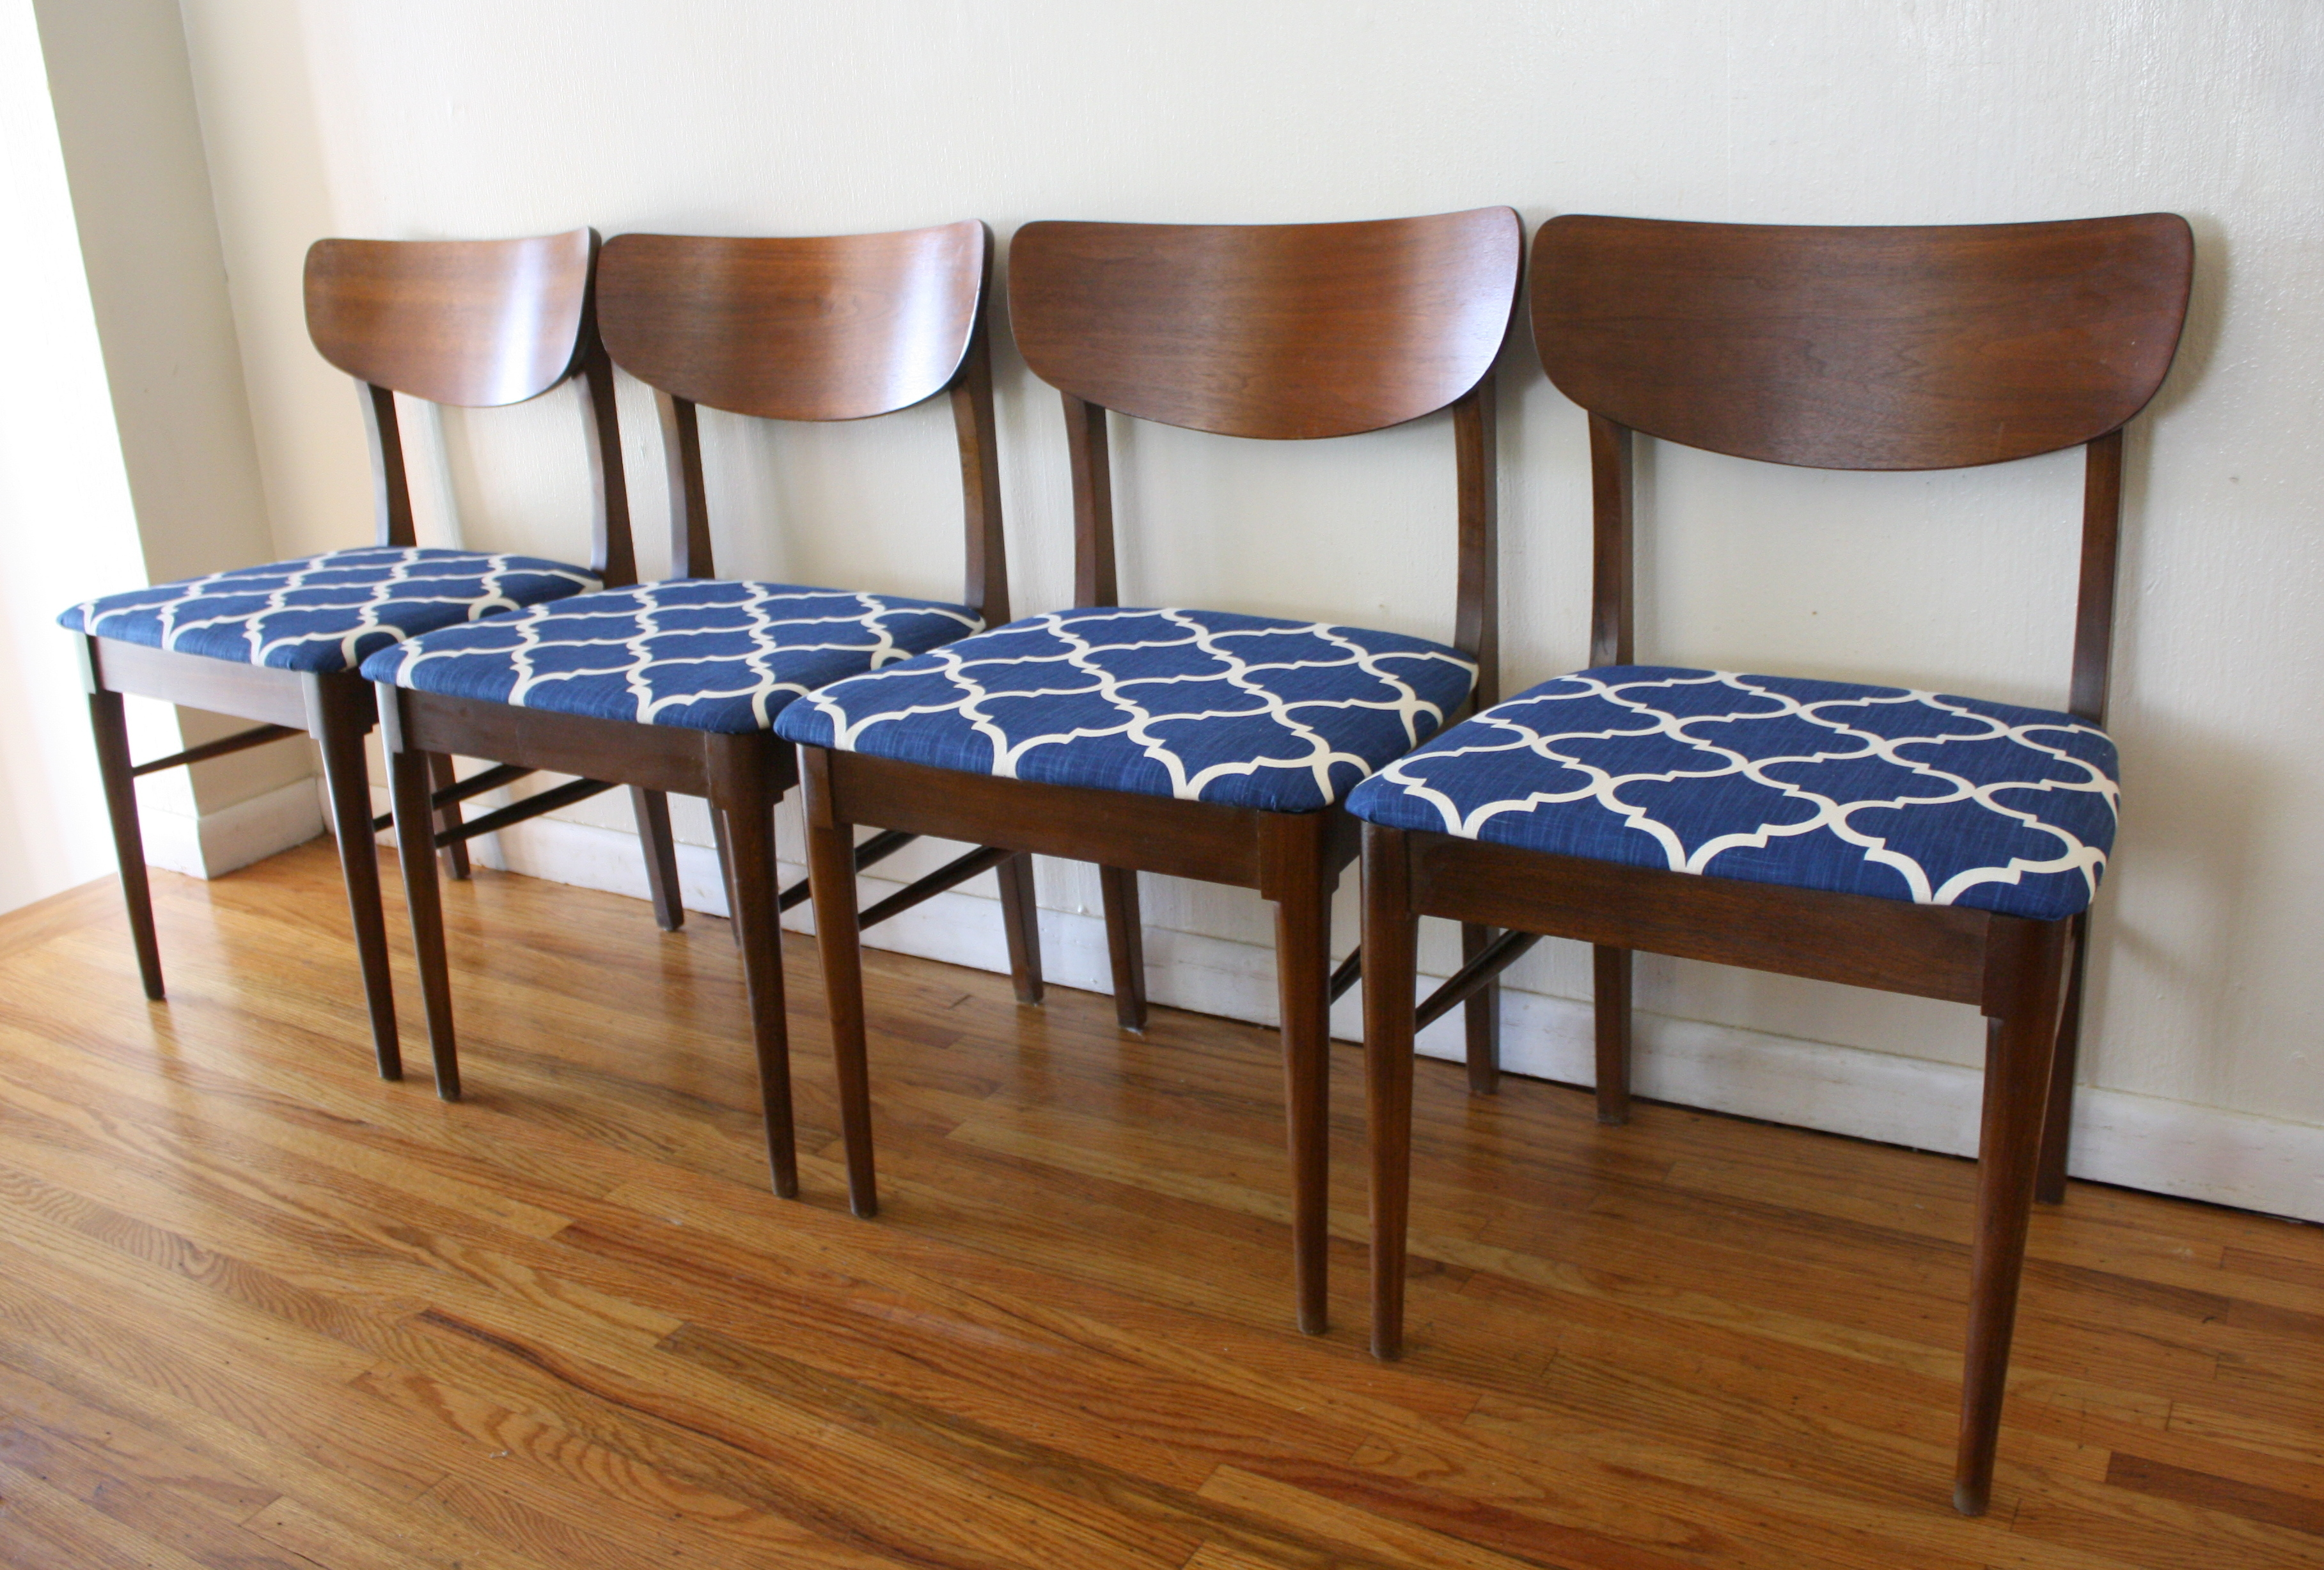 mid century modern dining chairs mid century kitchen chairs mcm low frame dining chairs blue seats 1